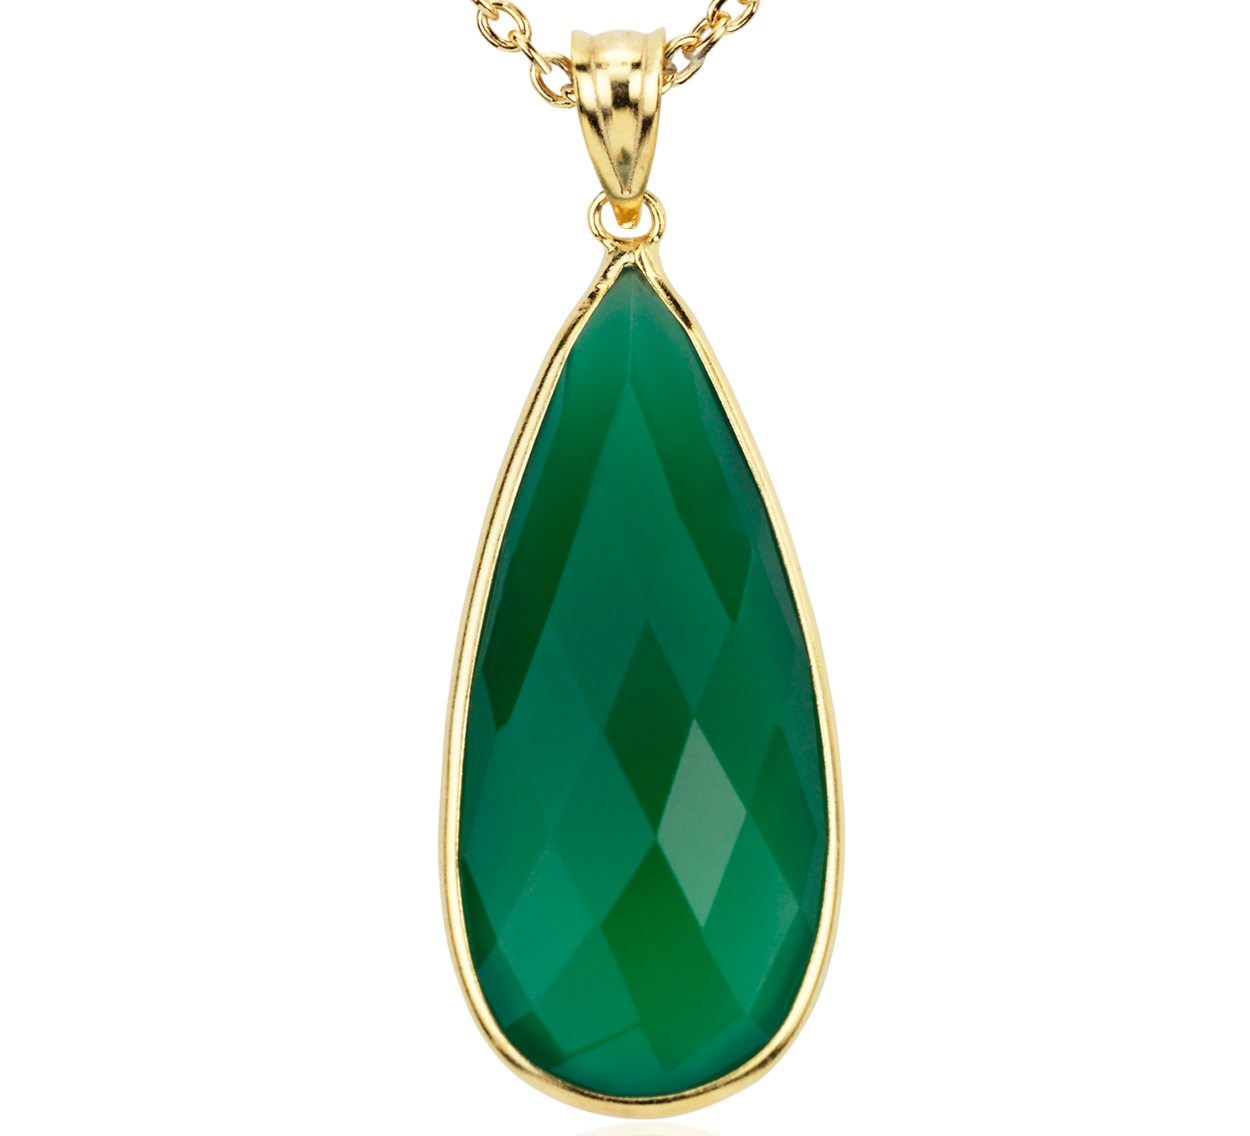 Green Onyx Pendant in Gold Vermeil